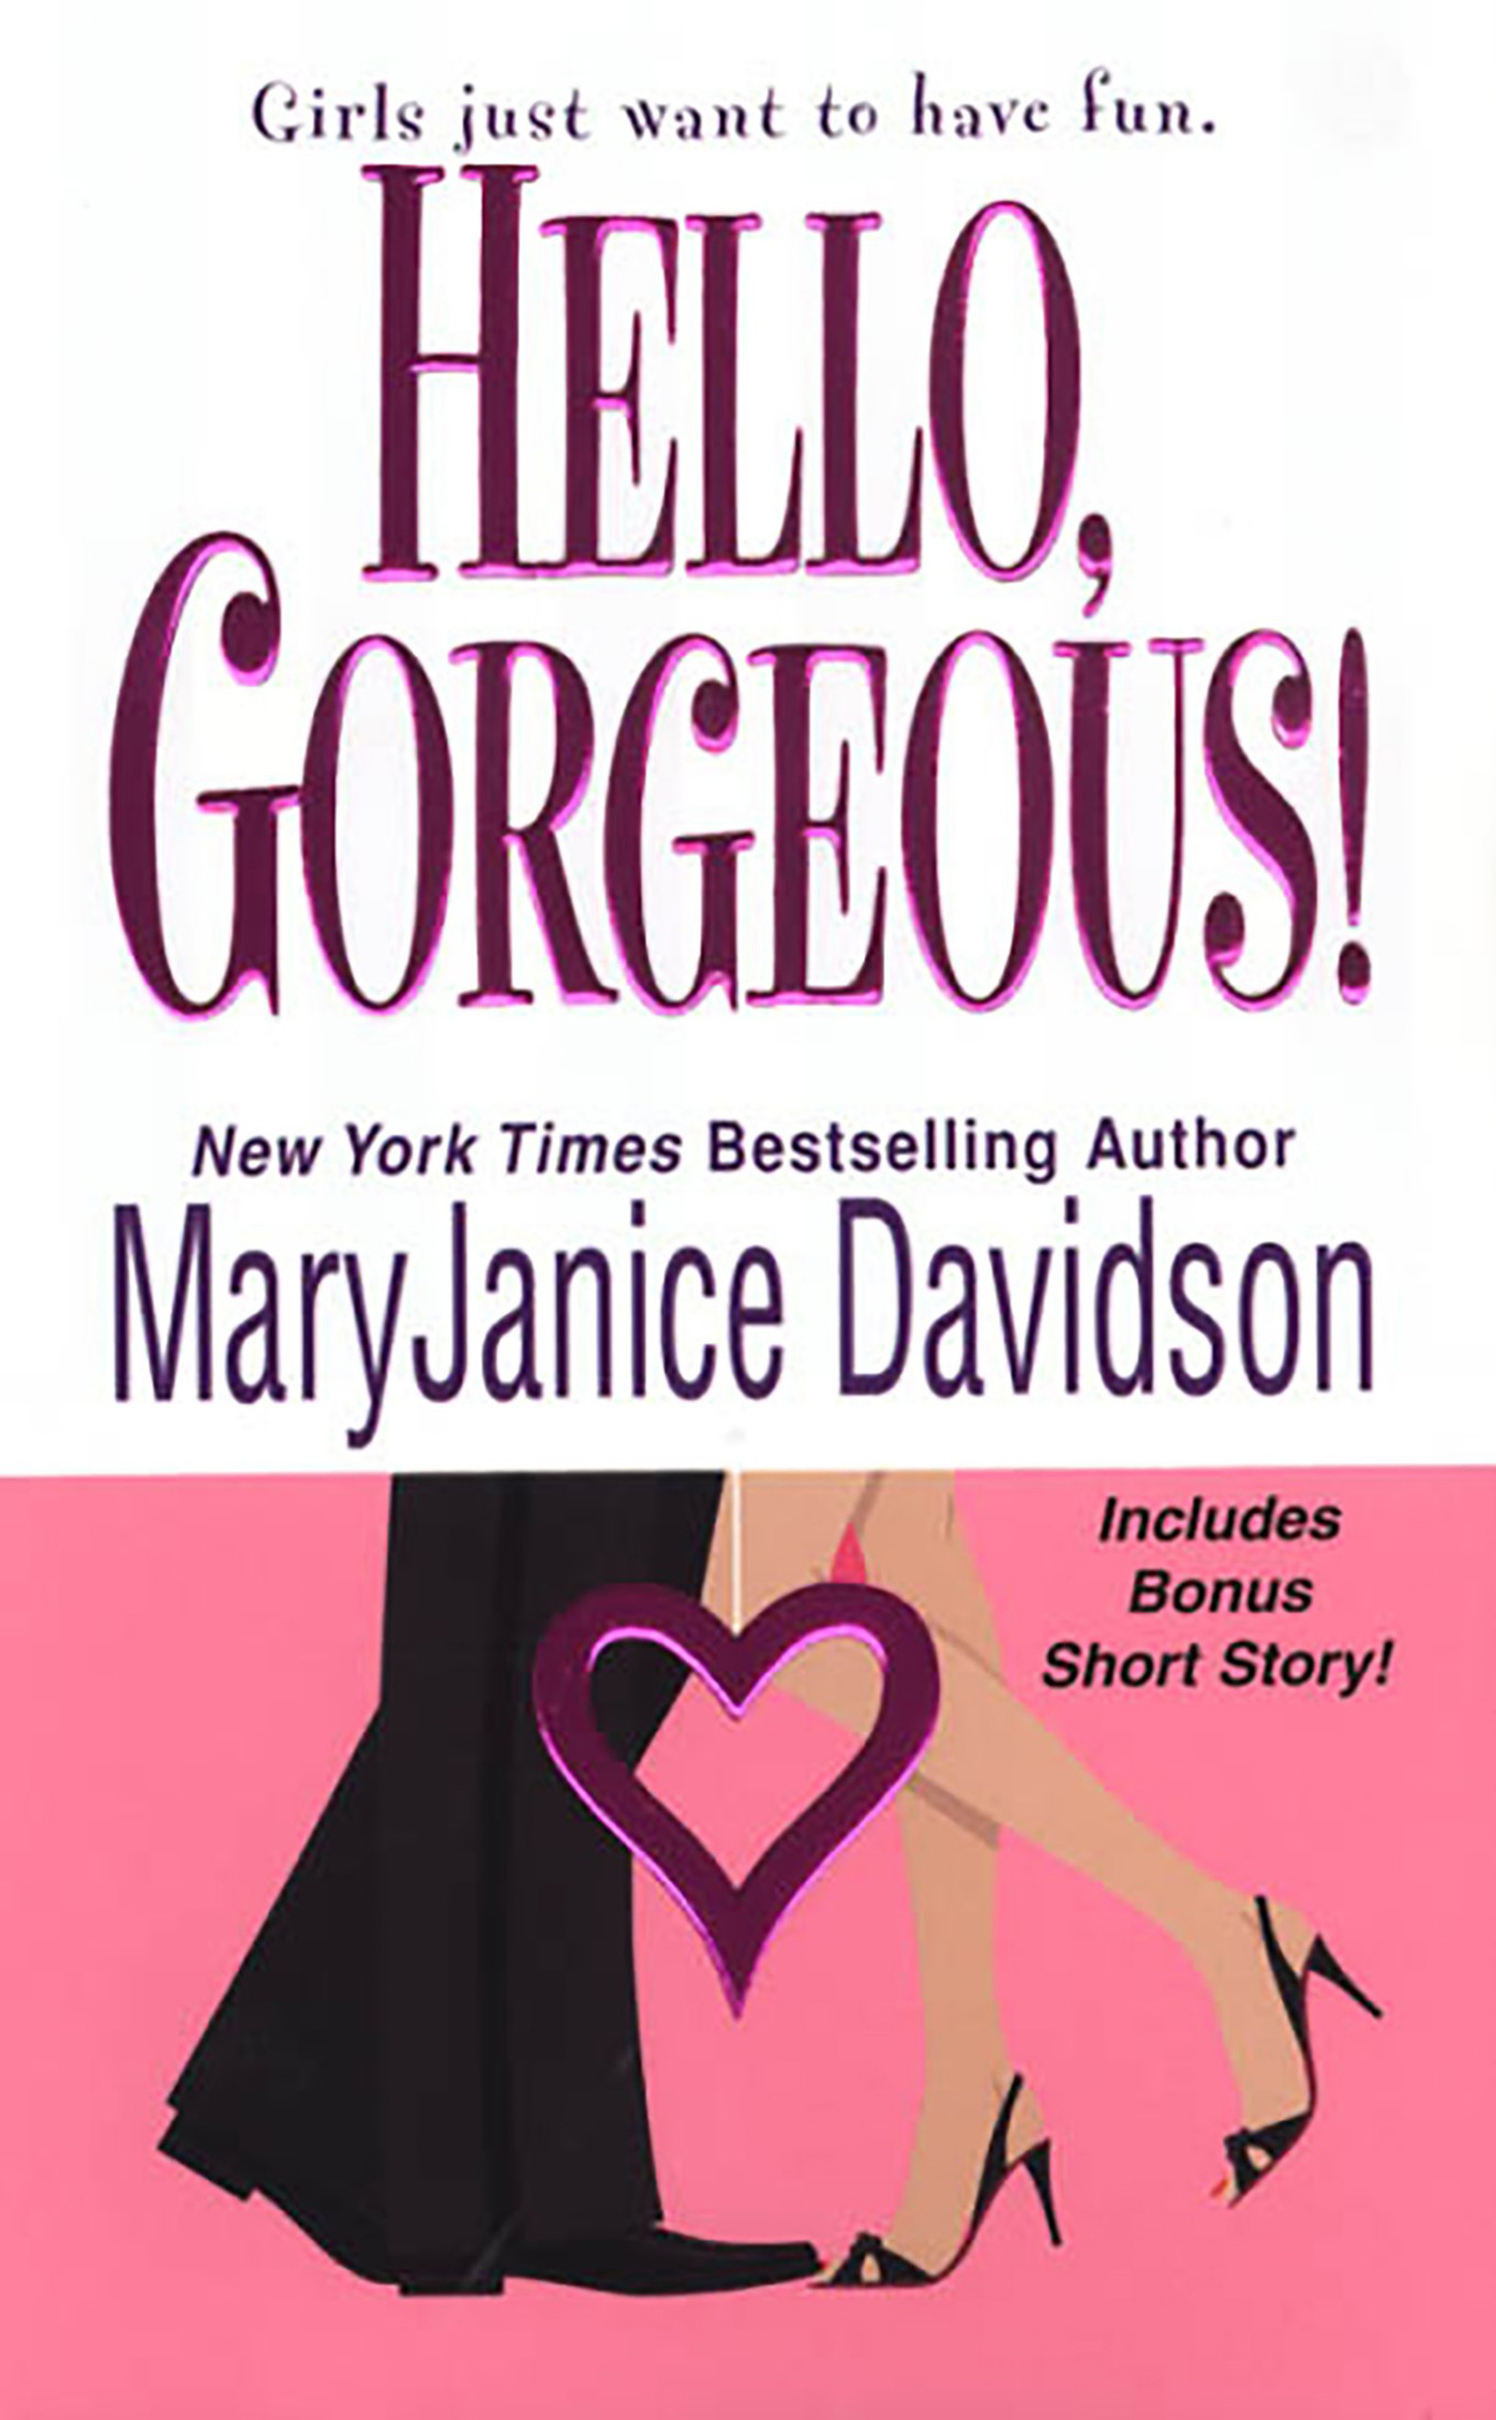 Hello, gorgeous! cover image